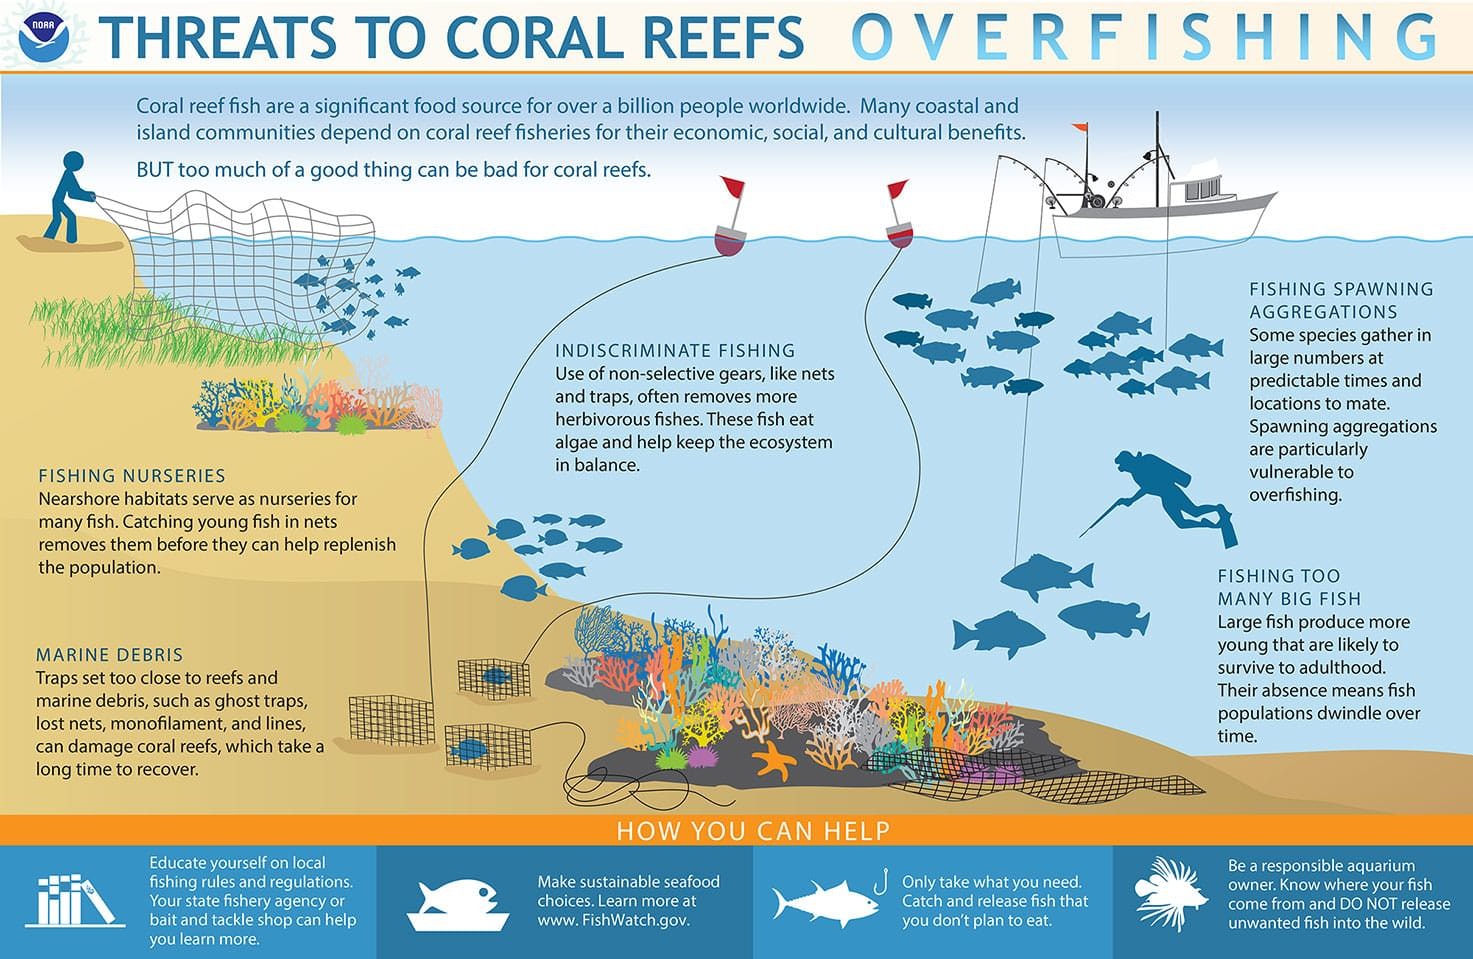 How Does Overfishing Threaten Coral Reefs